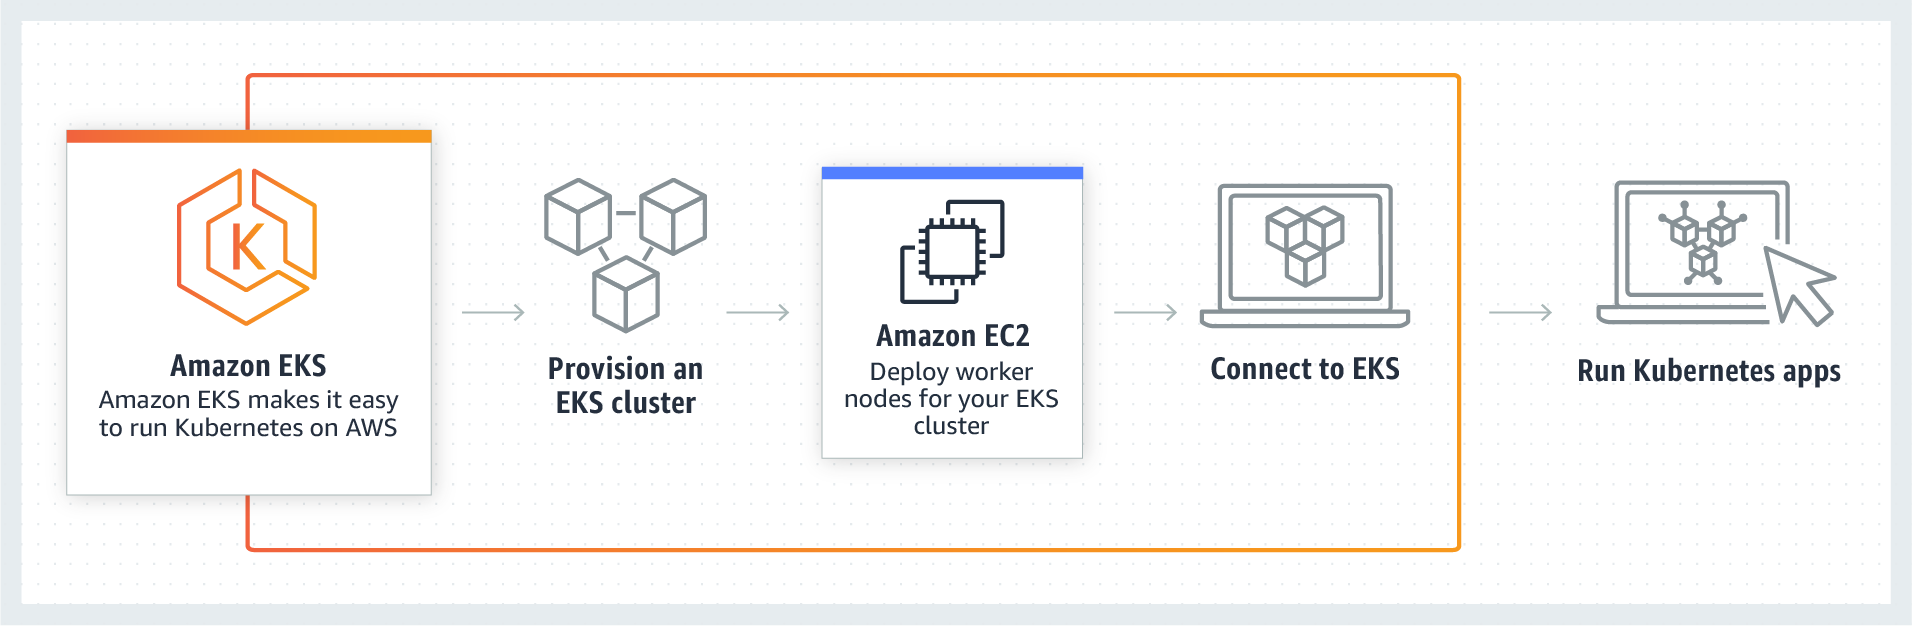 HOW AWS EKS WORKS